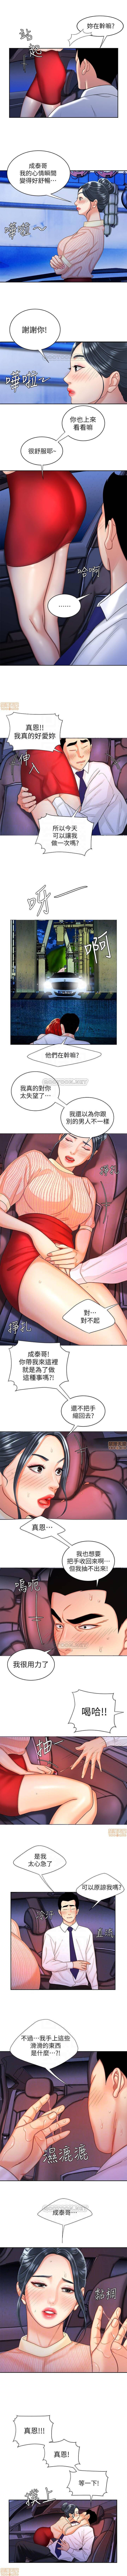 DELIVERY MAN | 幸福外卖员 Ch. 9 2